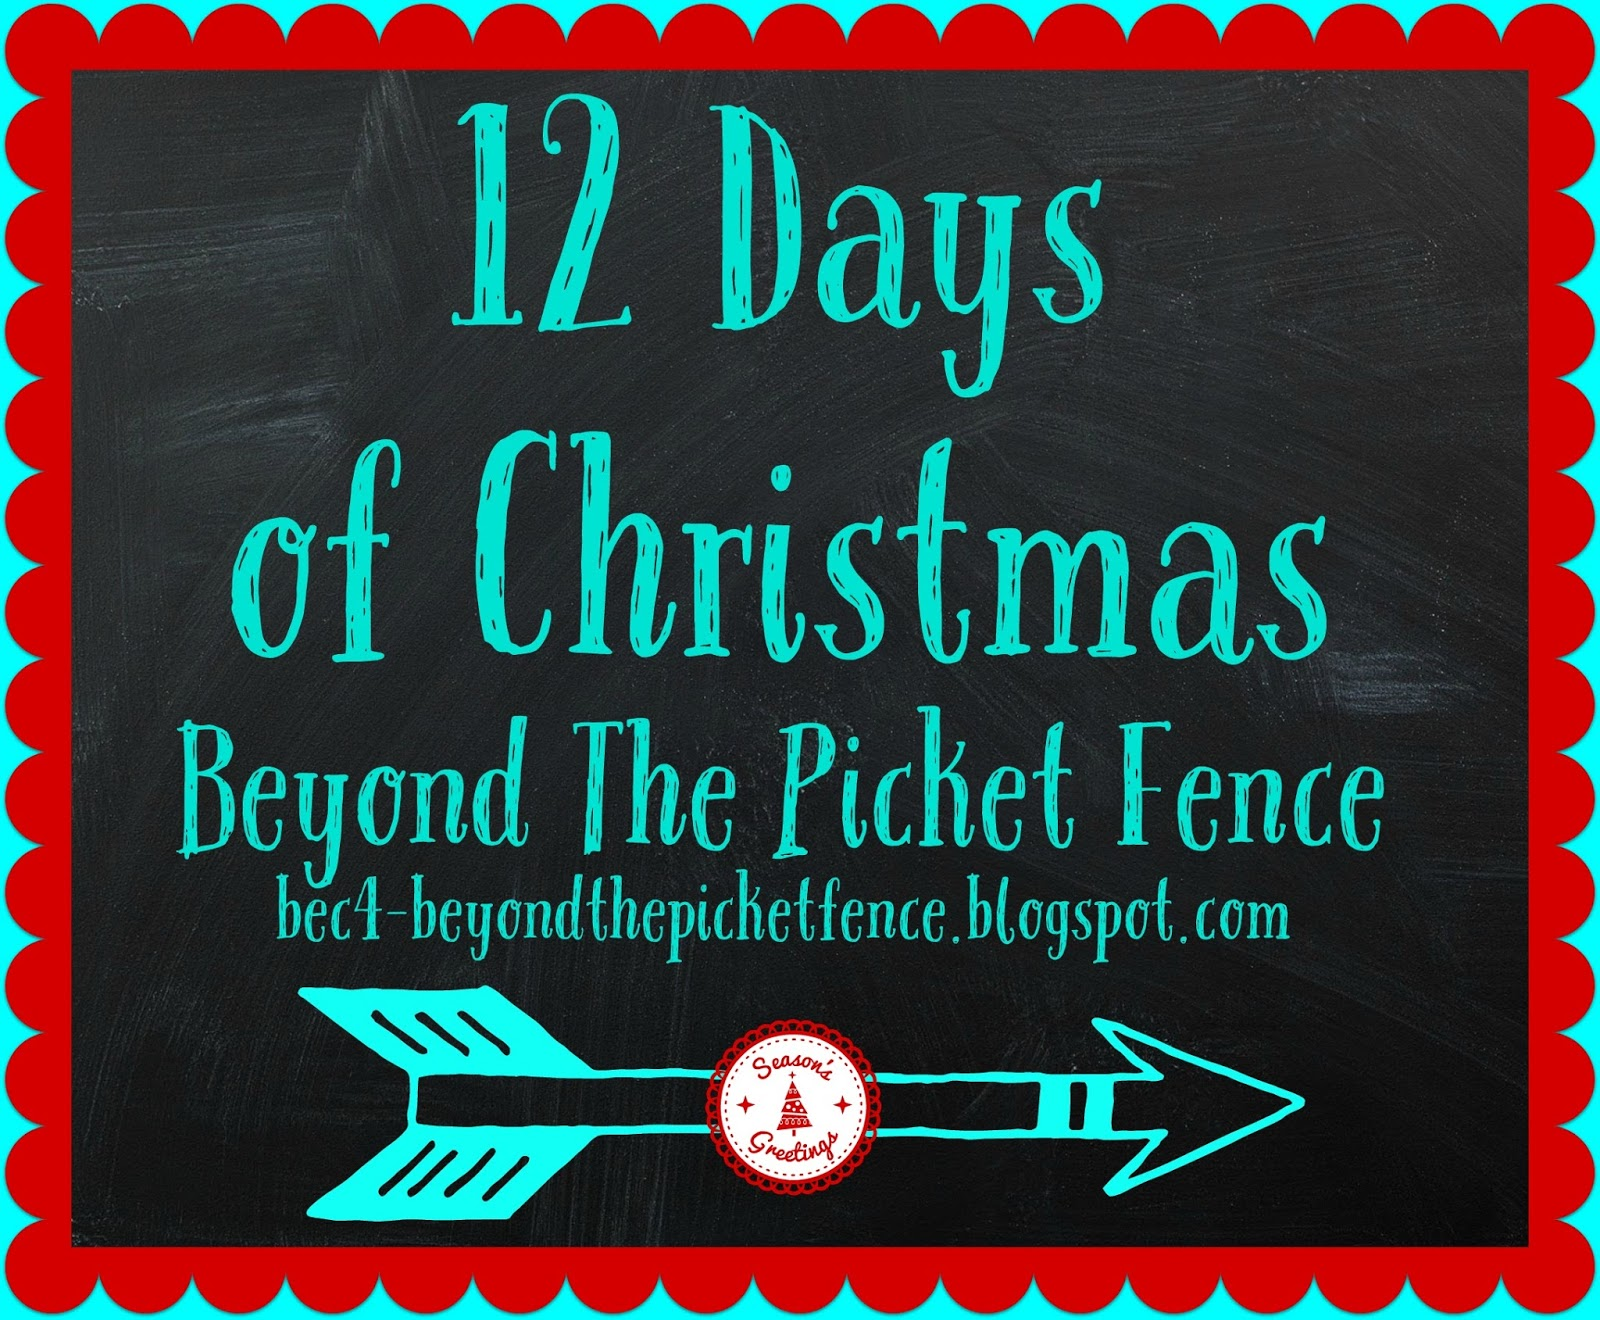 christmas projects diy 12 days of christmas httpbec4 - 12 Days Of Christmas Ideas